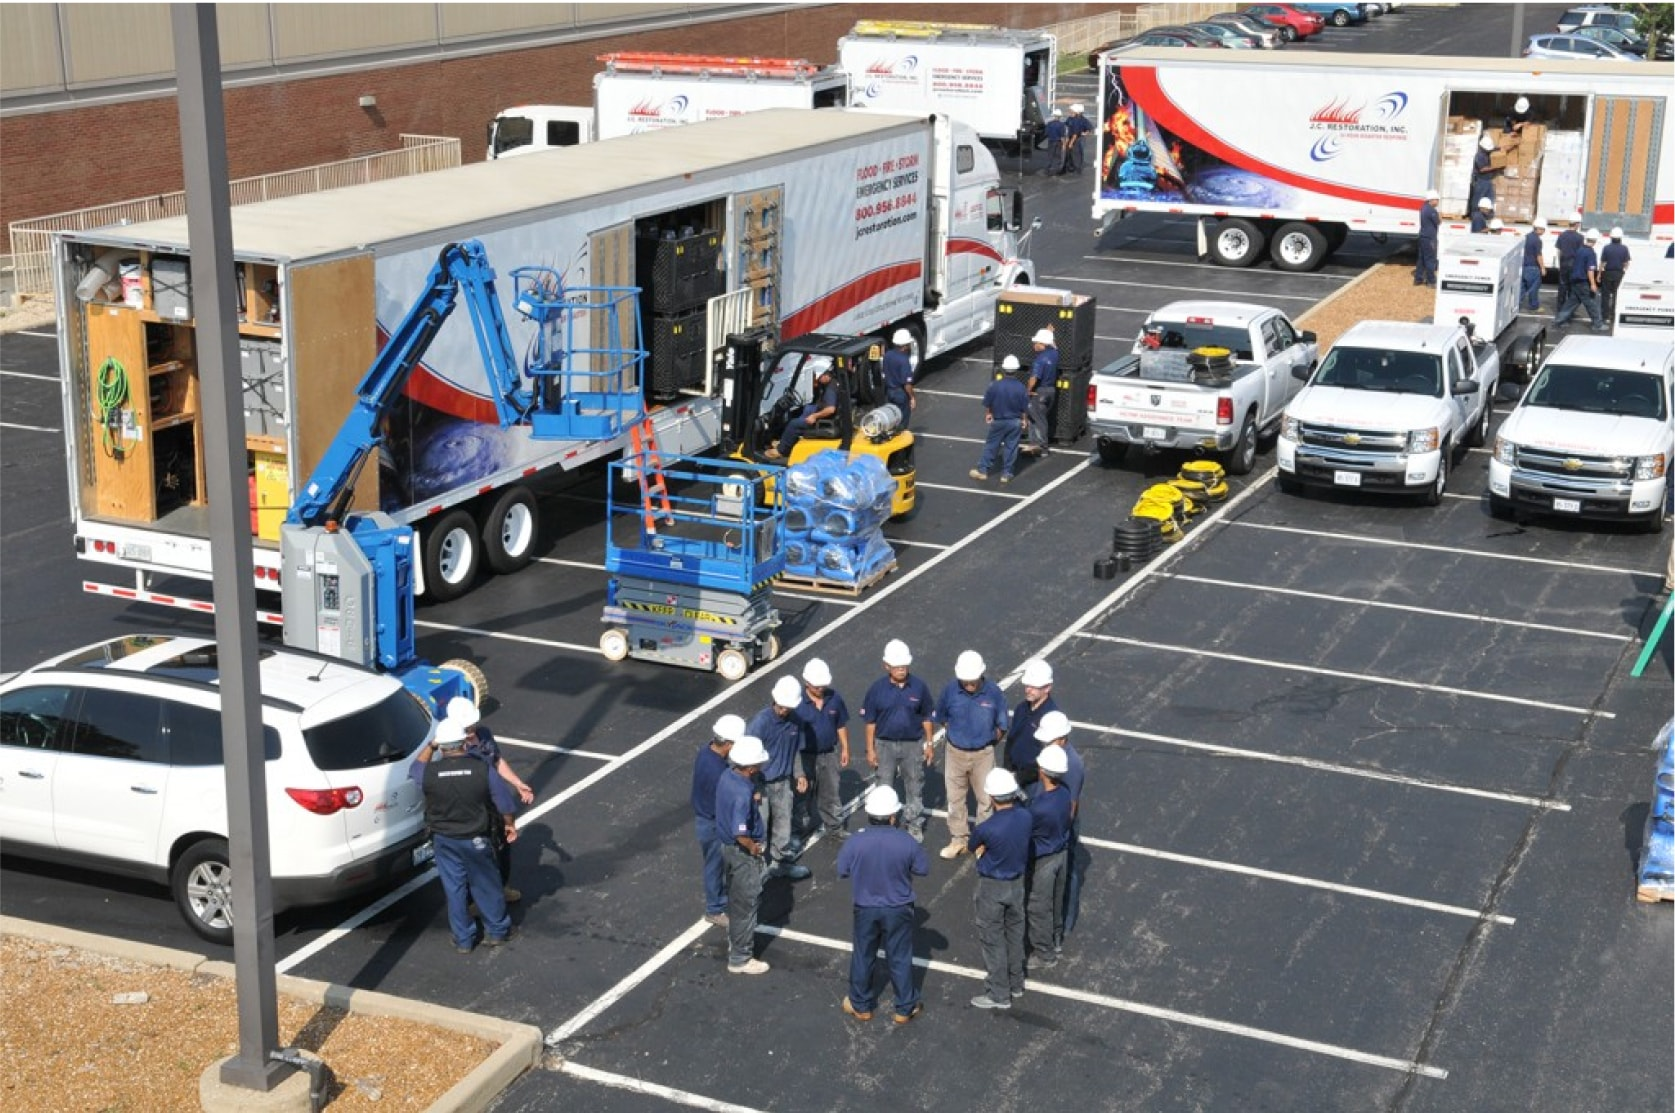 J.C. Restoration emergency team with trucks